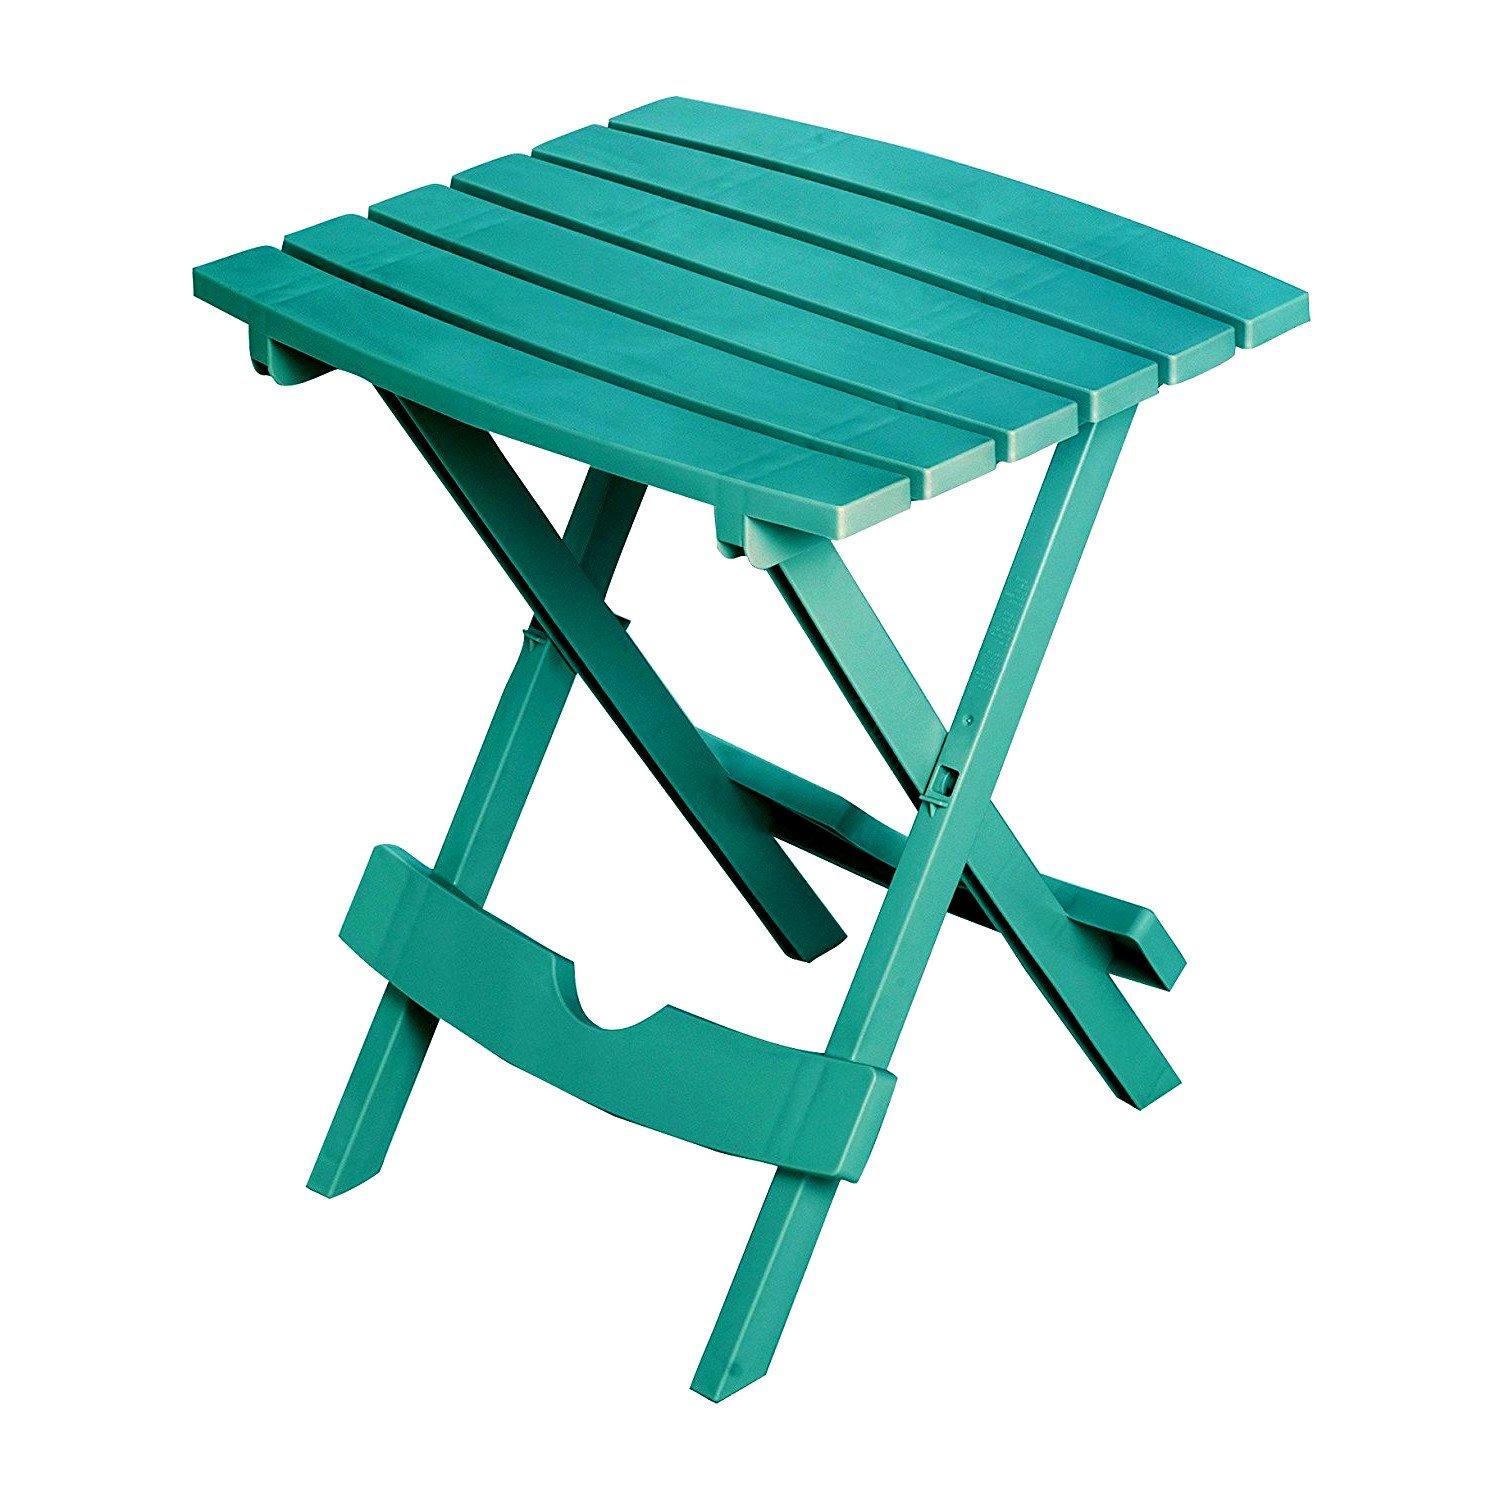 Slat Patio Table Plastic Folding Side Picnic Lightweight Small Square Fold Up Quick Easy Indoor Outdoor Camping Stand Light Camp Compact & eBook by Easy&FunDeals by EFD